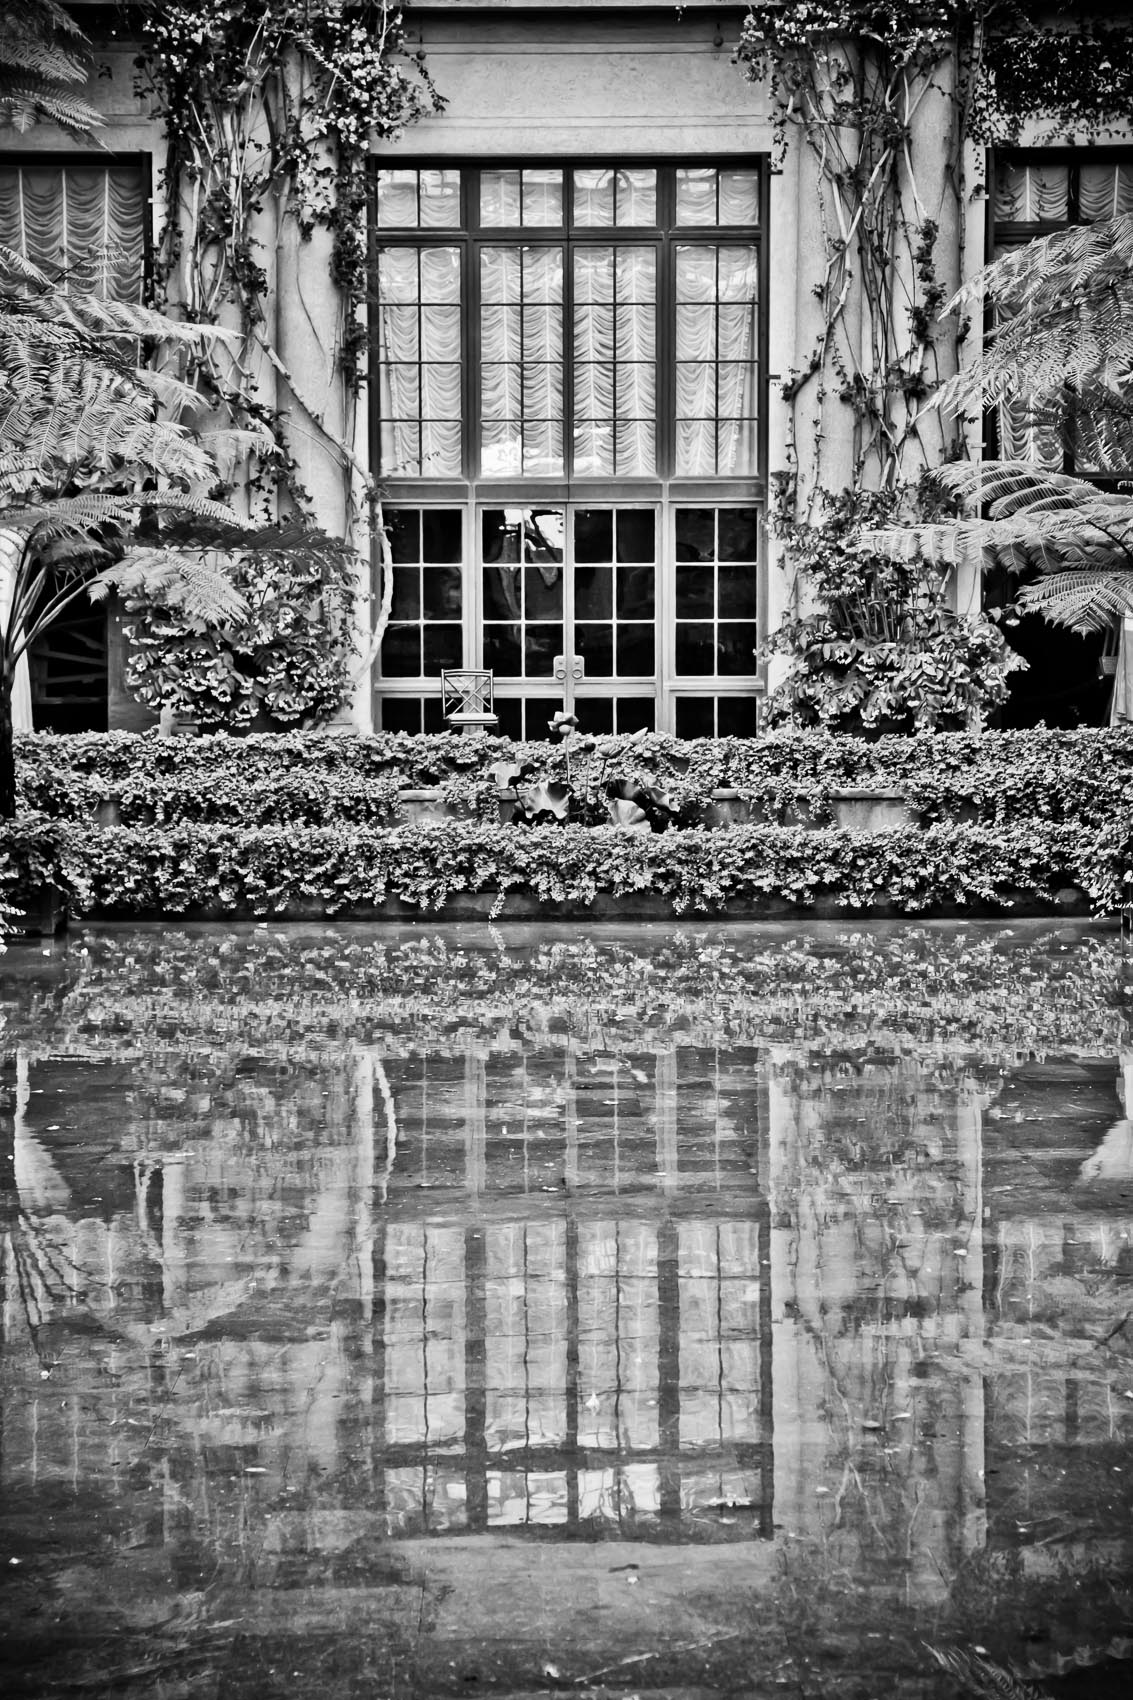 Architecture Feature in the Conservatory at Longwood Gardens in Kennet Square, PA | J. Eldon Zimmerman Photography | Lancaster, PA Commercial Photographer